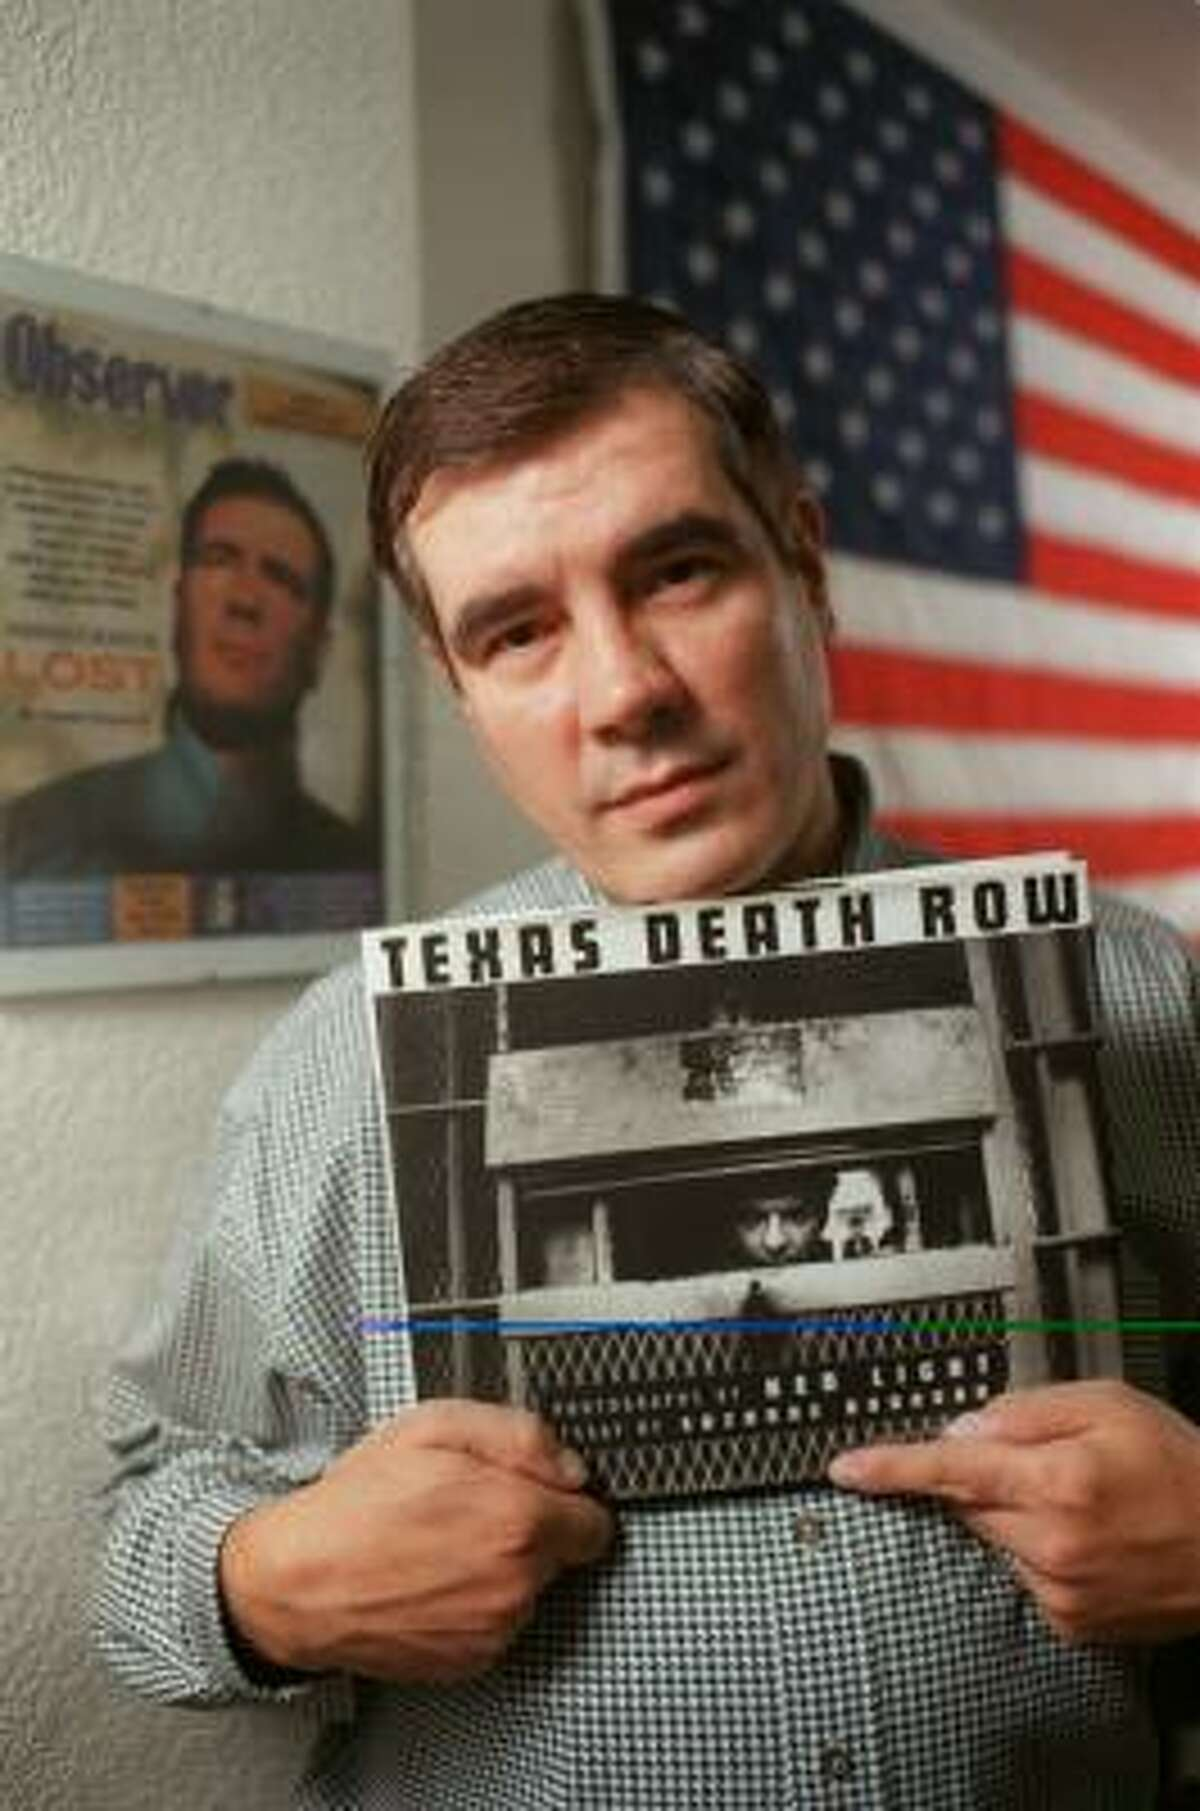 In a 1999 photo, Kerry Max Cook holds Texas Death Row, a book by Suzanne Donovan. Cook served 20 years there.